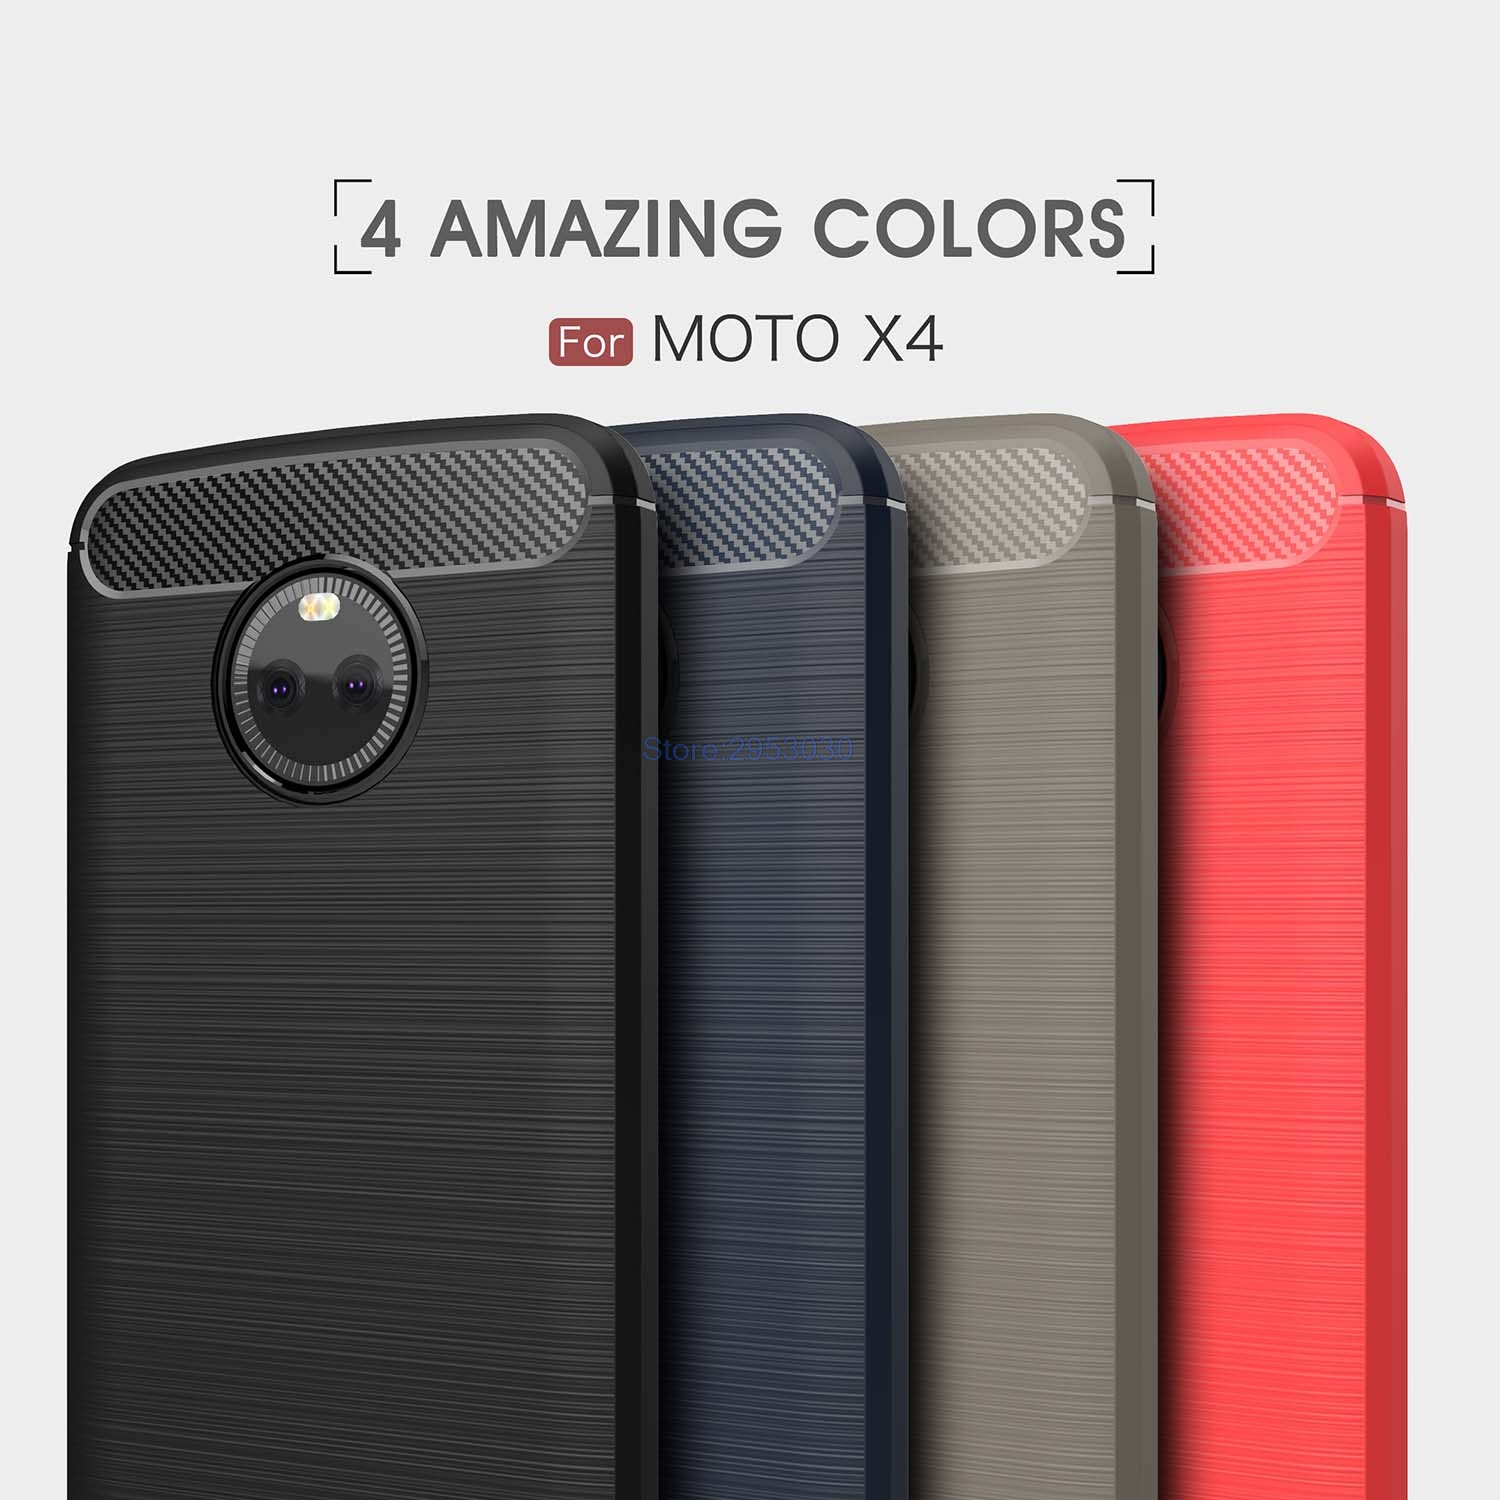 TPU Case for Motorola Moto <font><b>X4</b></font> <font><b>XT1900</b></font> <font><b>XT1900</b></font>-5 <font><b>XT1900</b></font>-7 Soft Silicone Carbon Fibe Case Mobile Phone Cover for Moto X Gen 4 Cover image